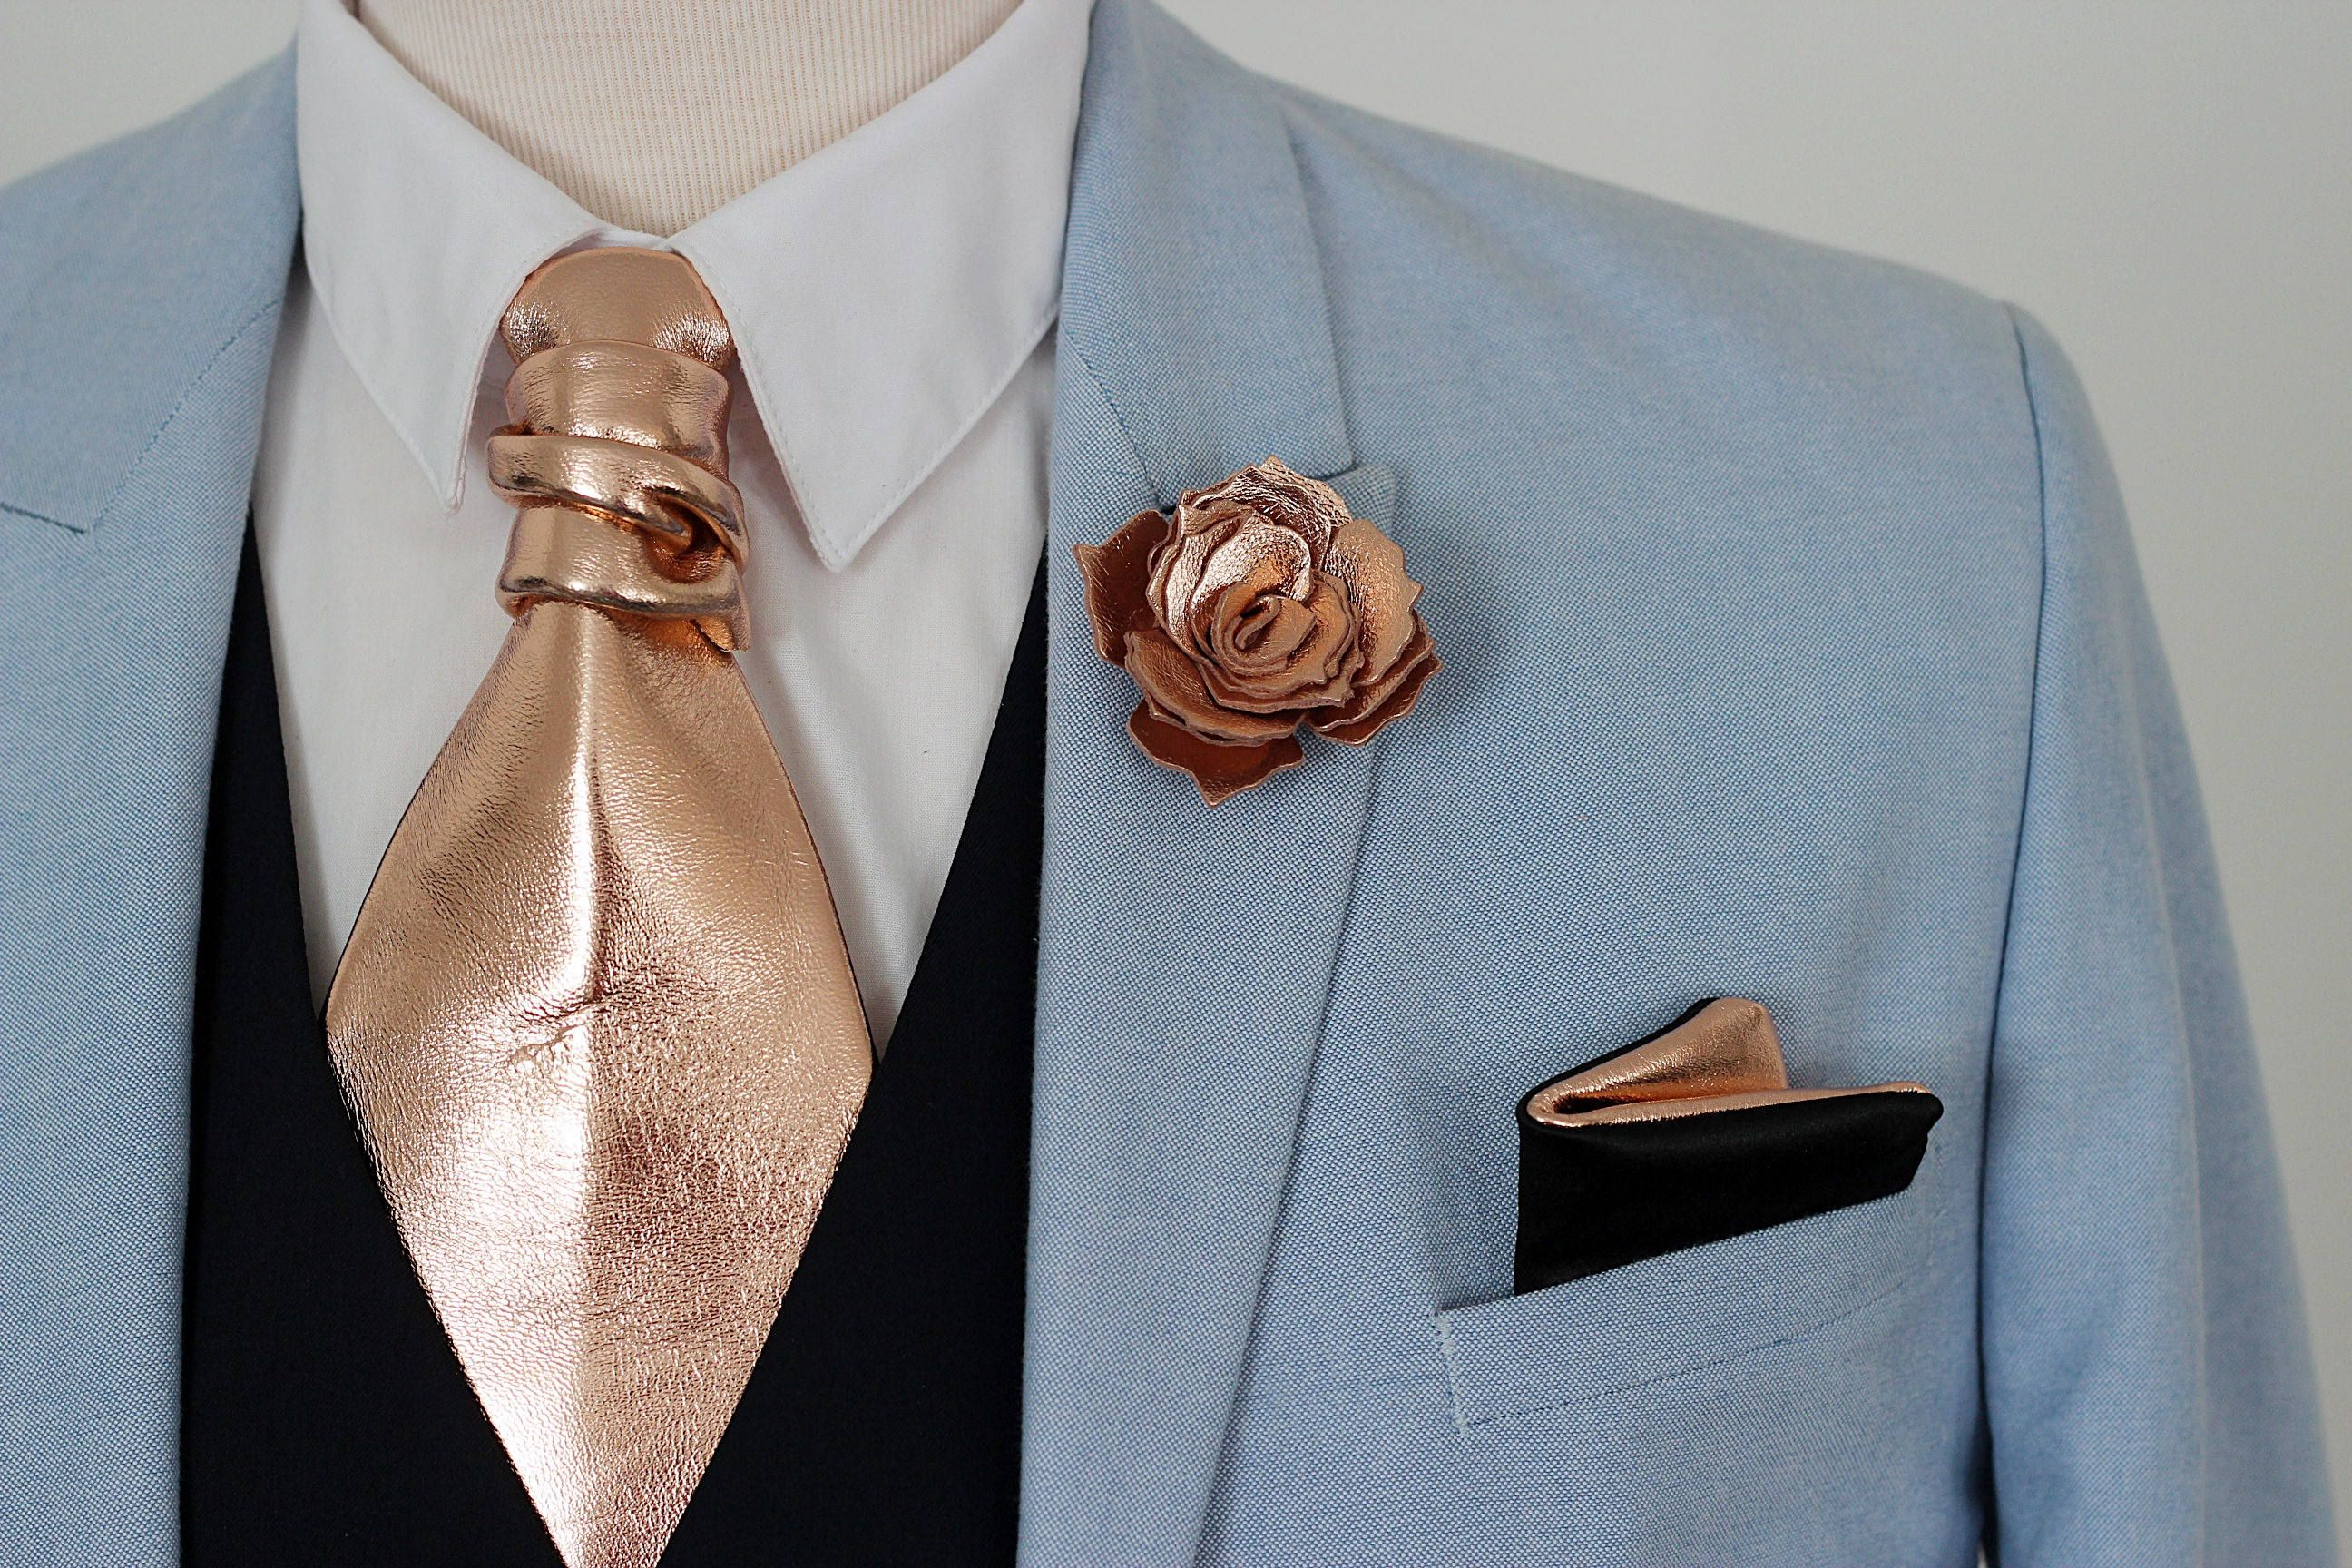 db002d4a217a Rose Gold leather ascot neck tie for men, boys rose gold wedding necktie,  bowtie genuine leather,mauve, suspenders, bow tie,cooper cravat by ...